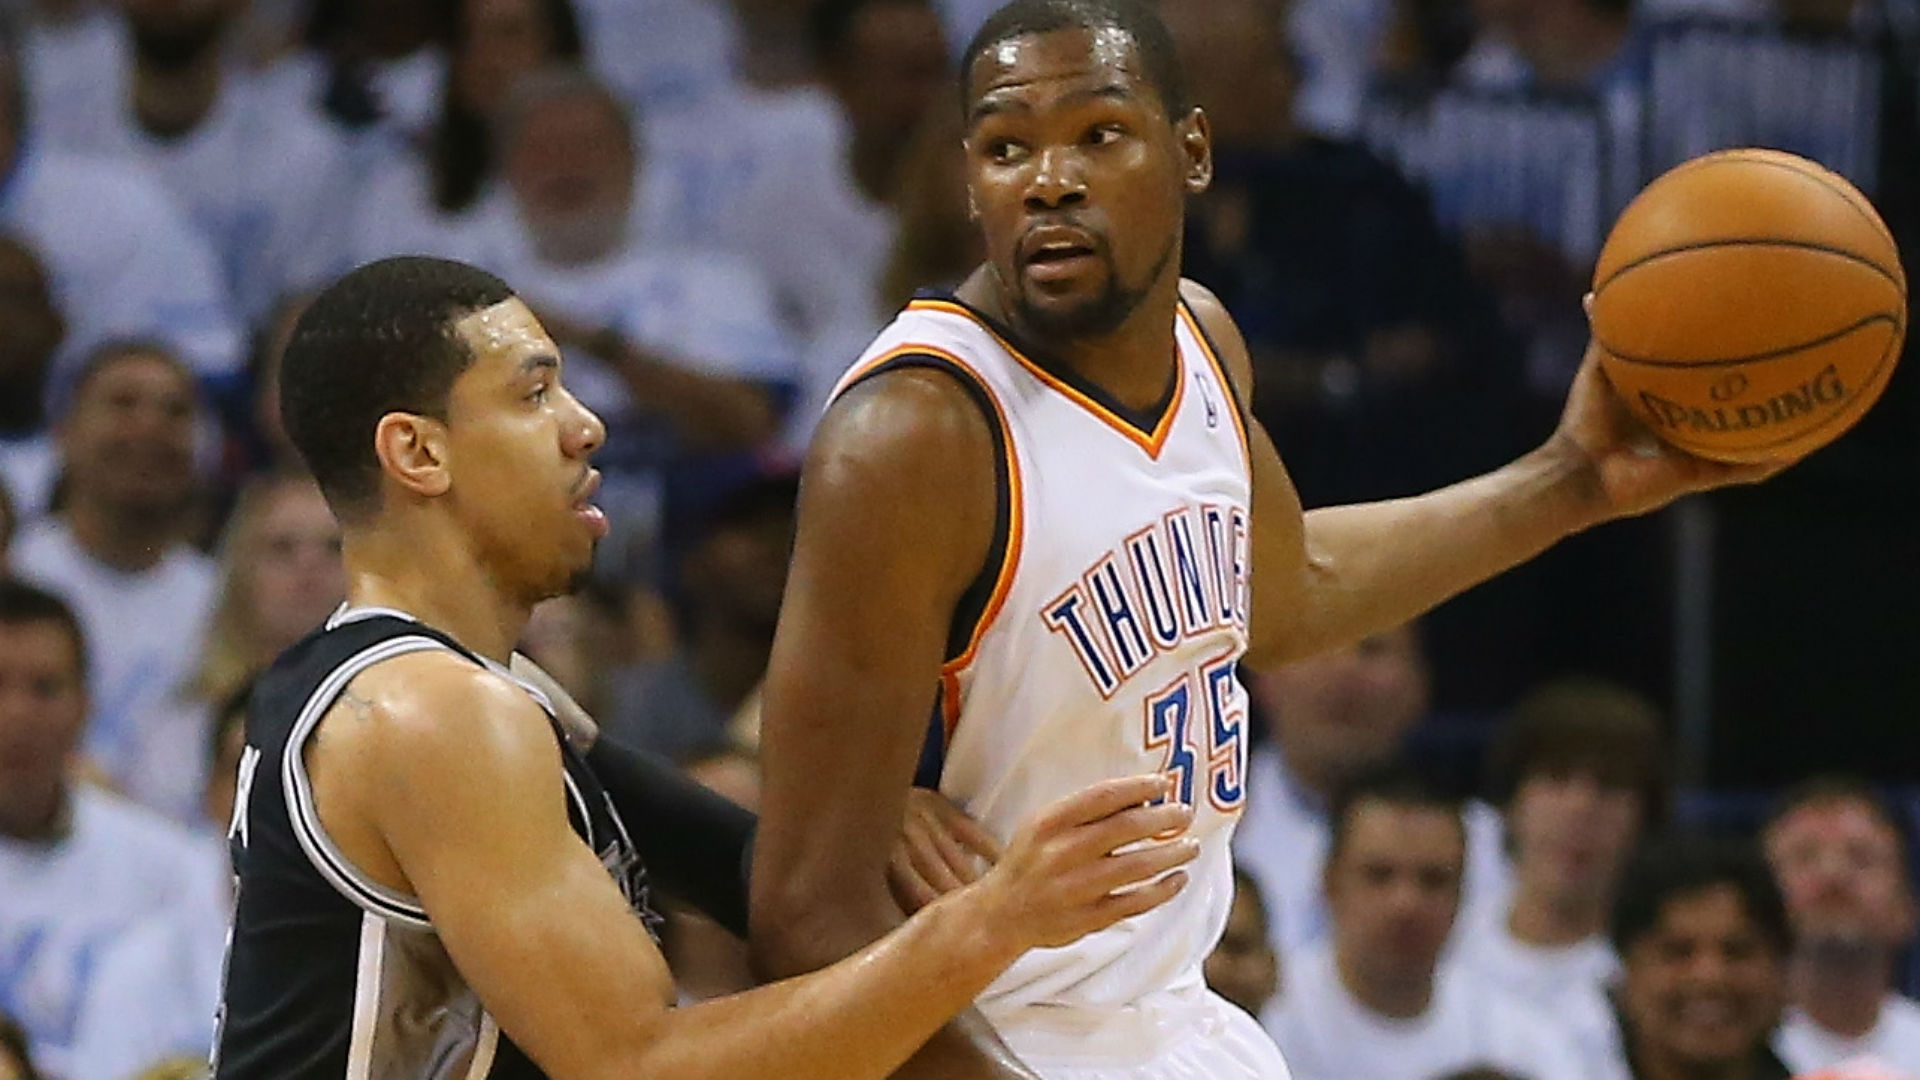 spurs-thunder-122214-ftr-getty.jpg